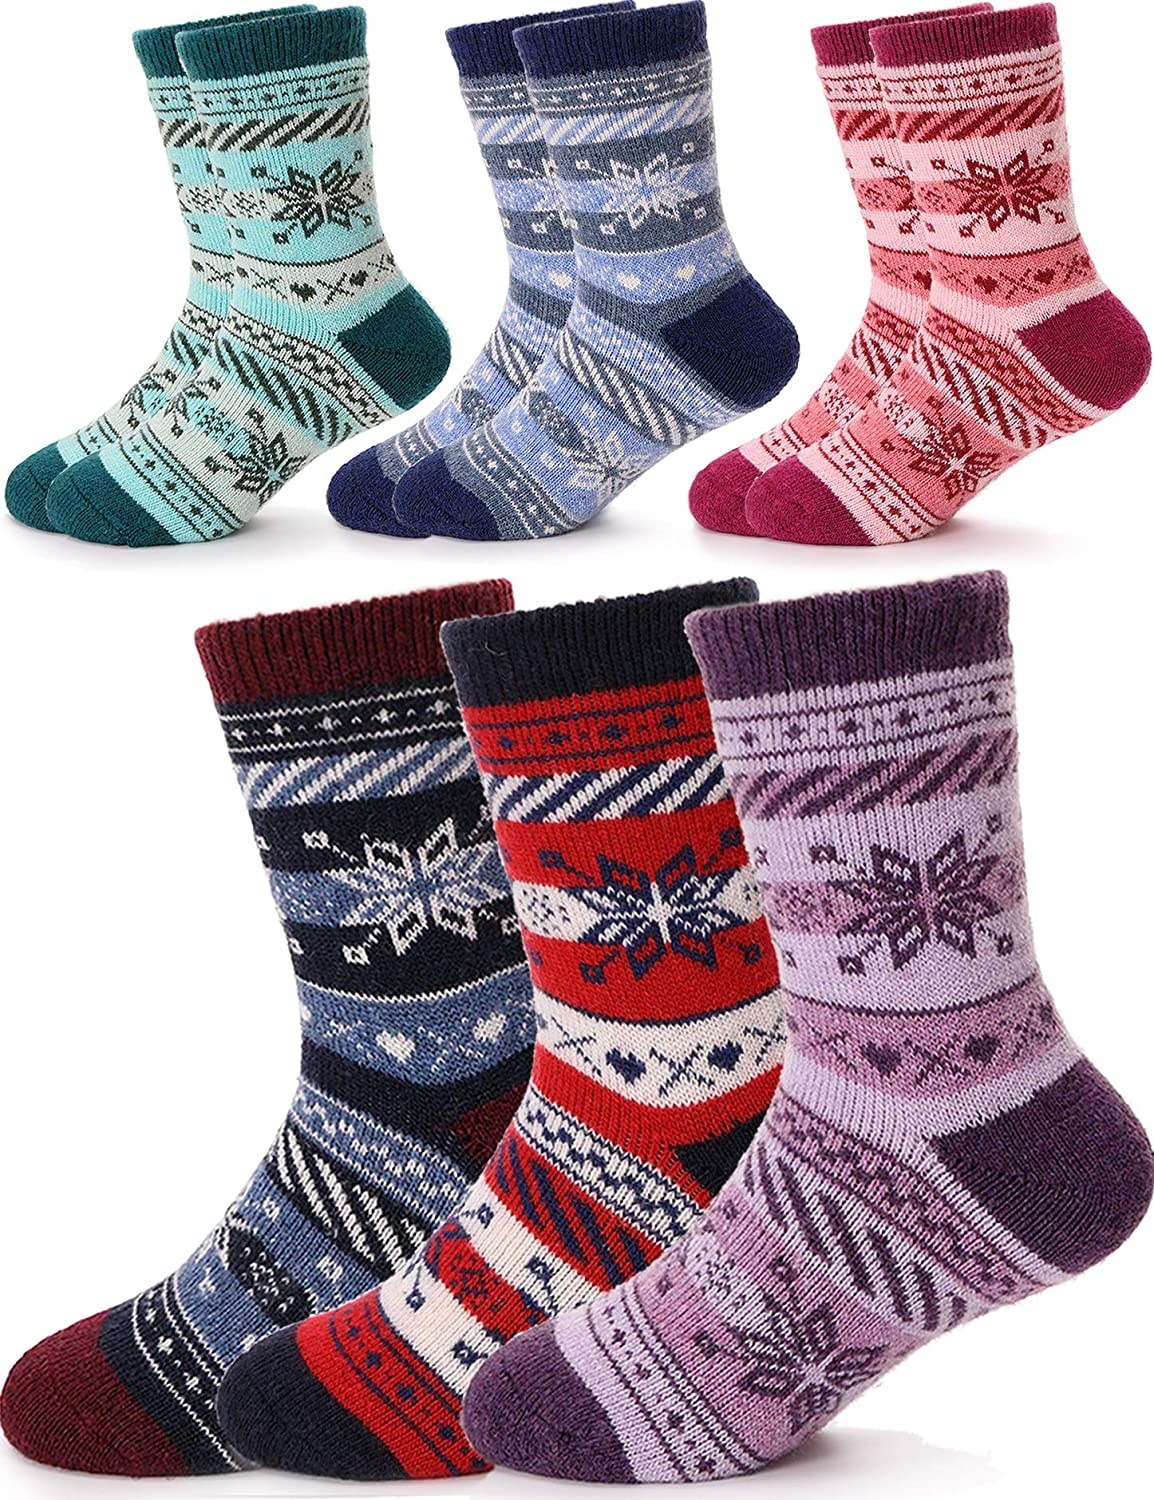 Sandsuced Kids Warm Wool Socks for Hiking Toddlers Boys Girls Winter Thick Heavy Thermal Cozy Gift Socks 6 Pairs